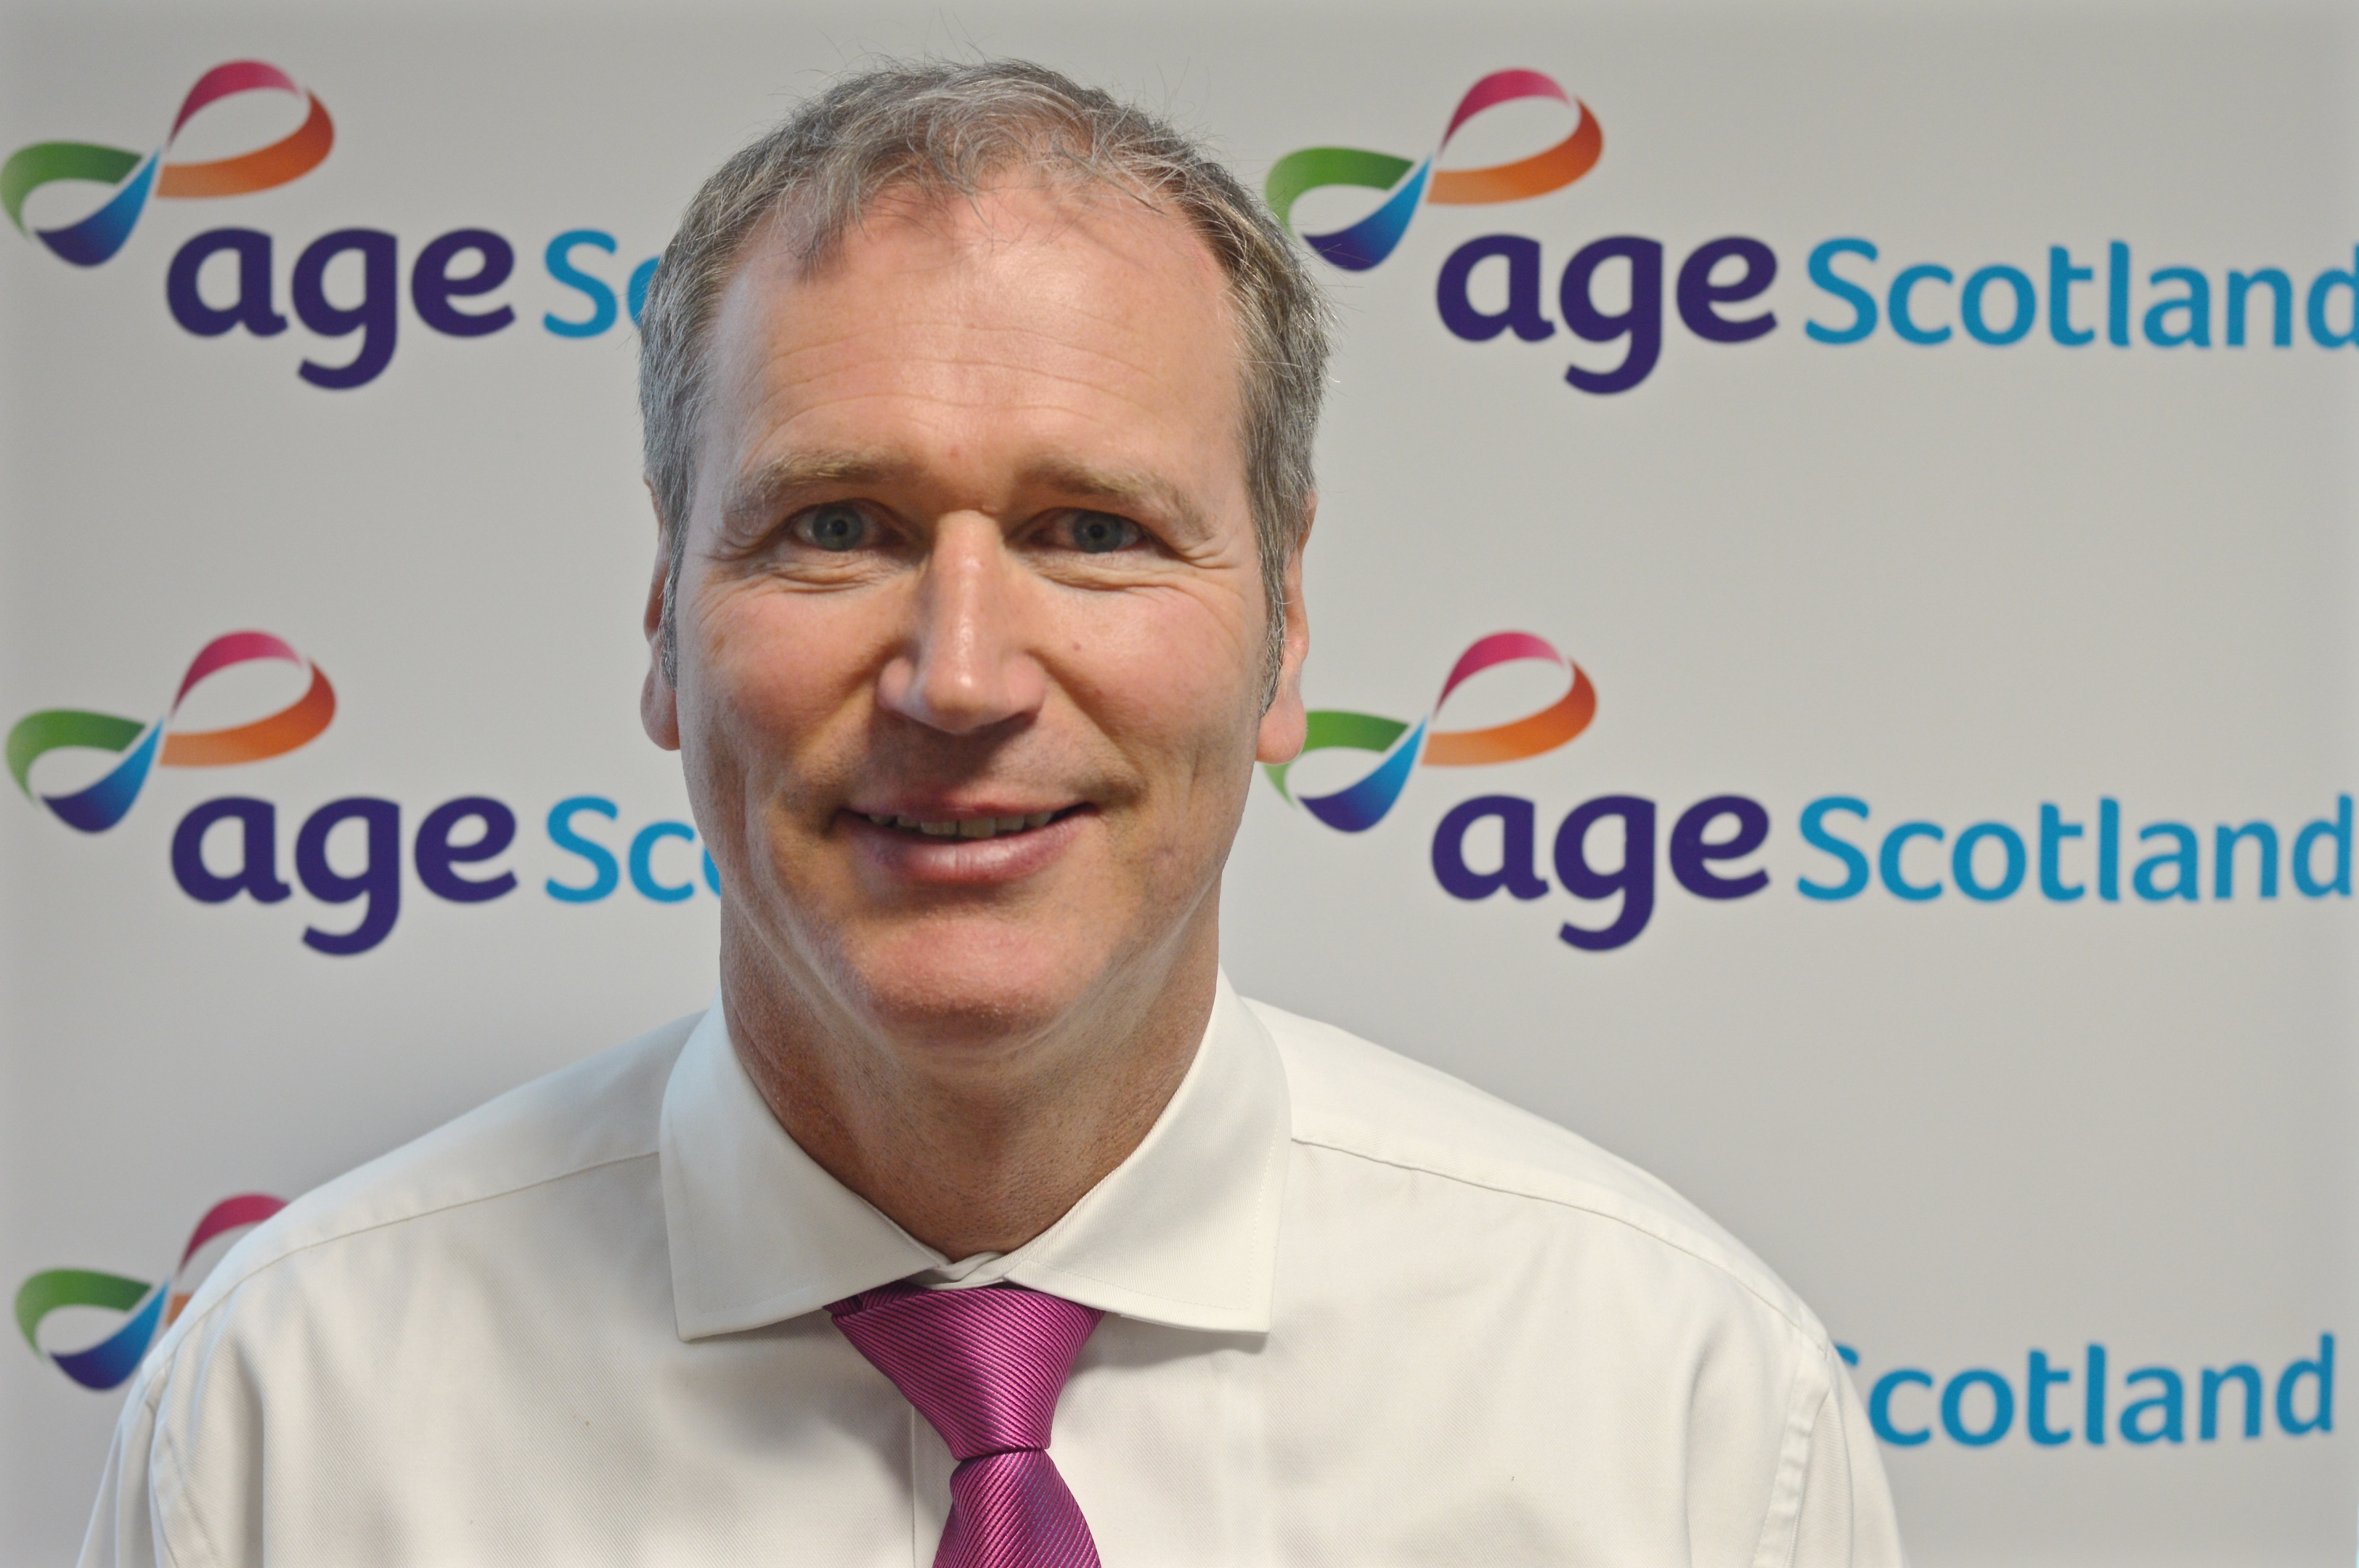 Brian Sloan, chief executive of Age Scotland